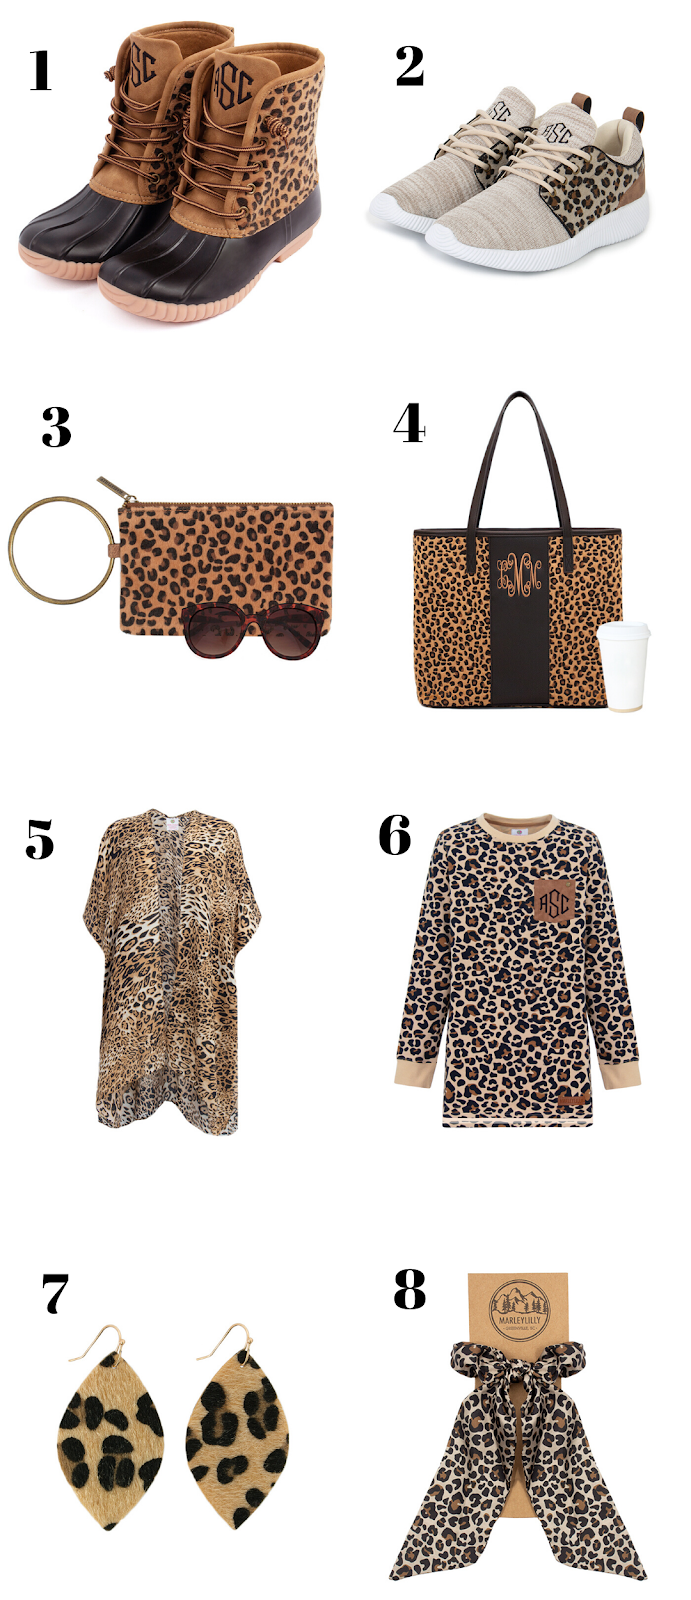 leopard themed marleylilly items